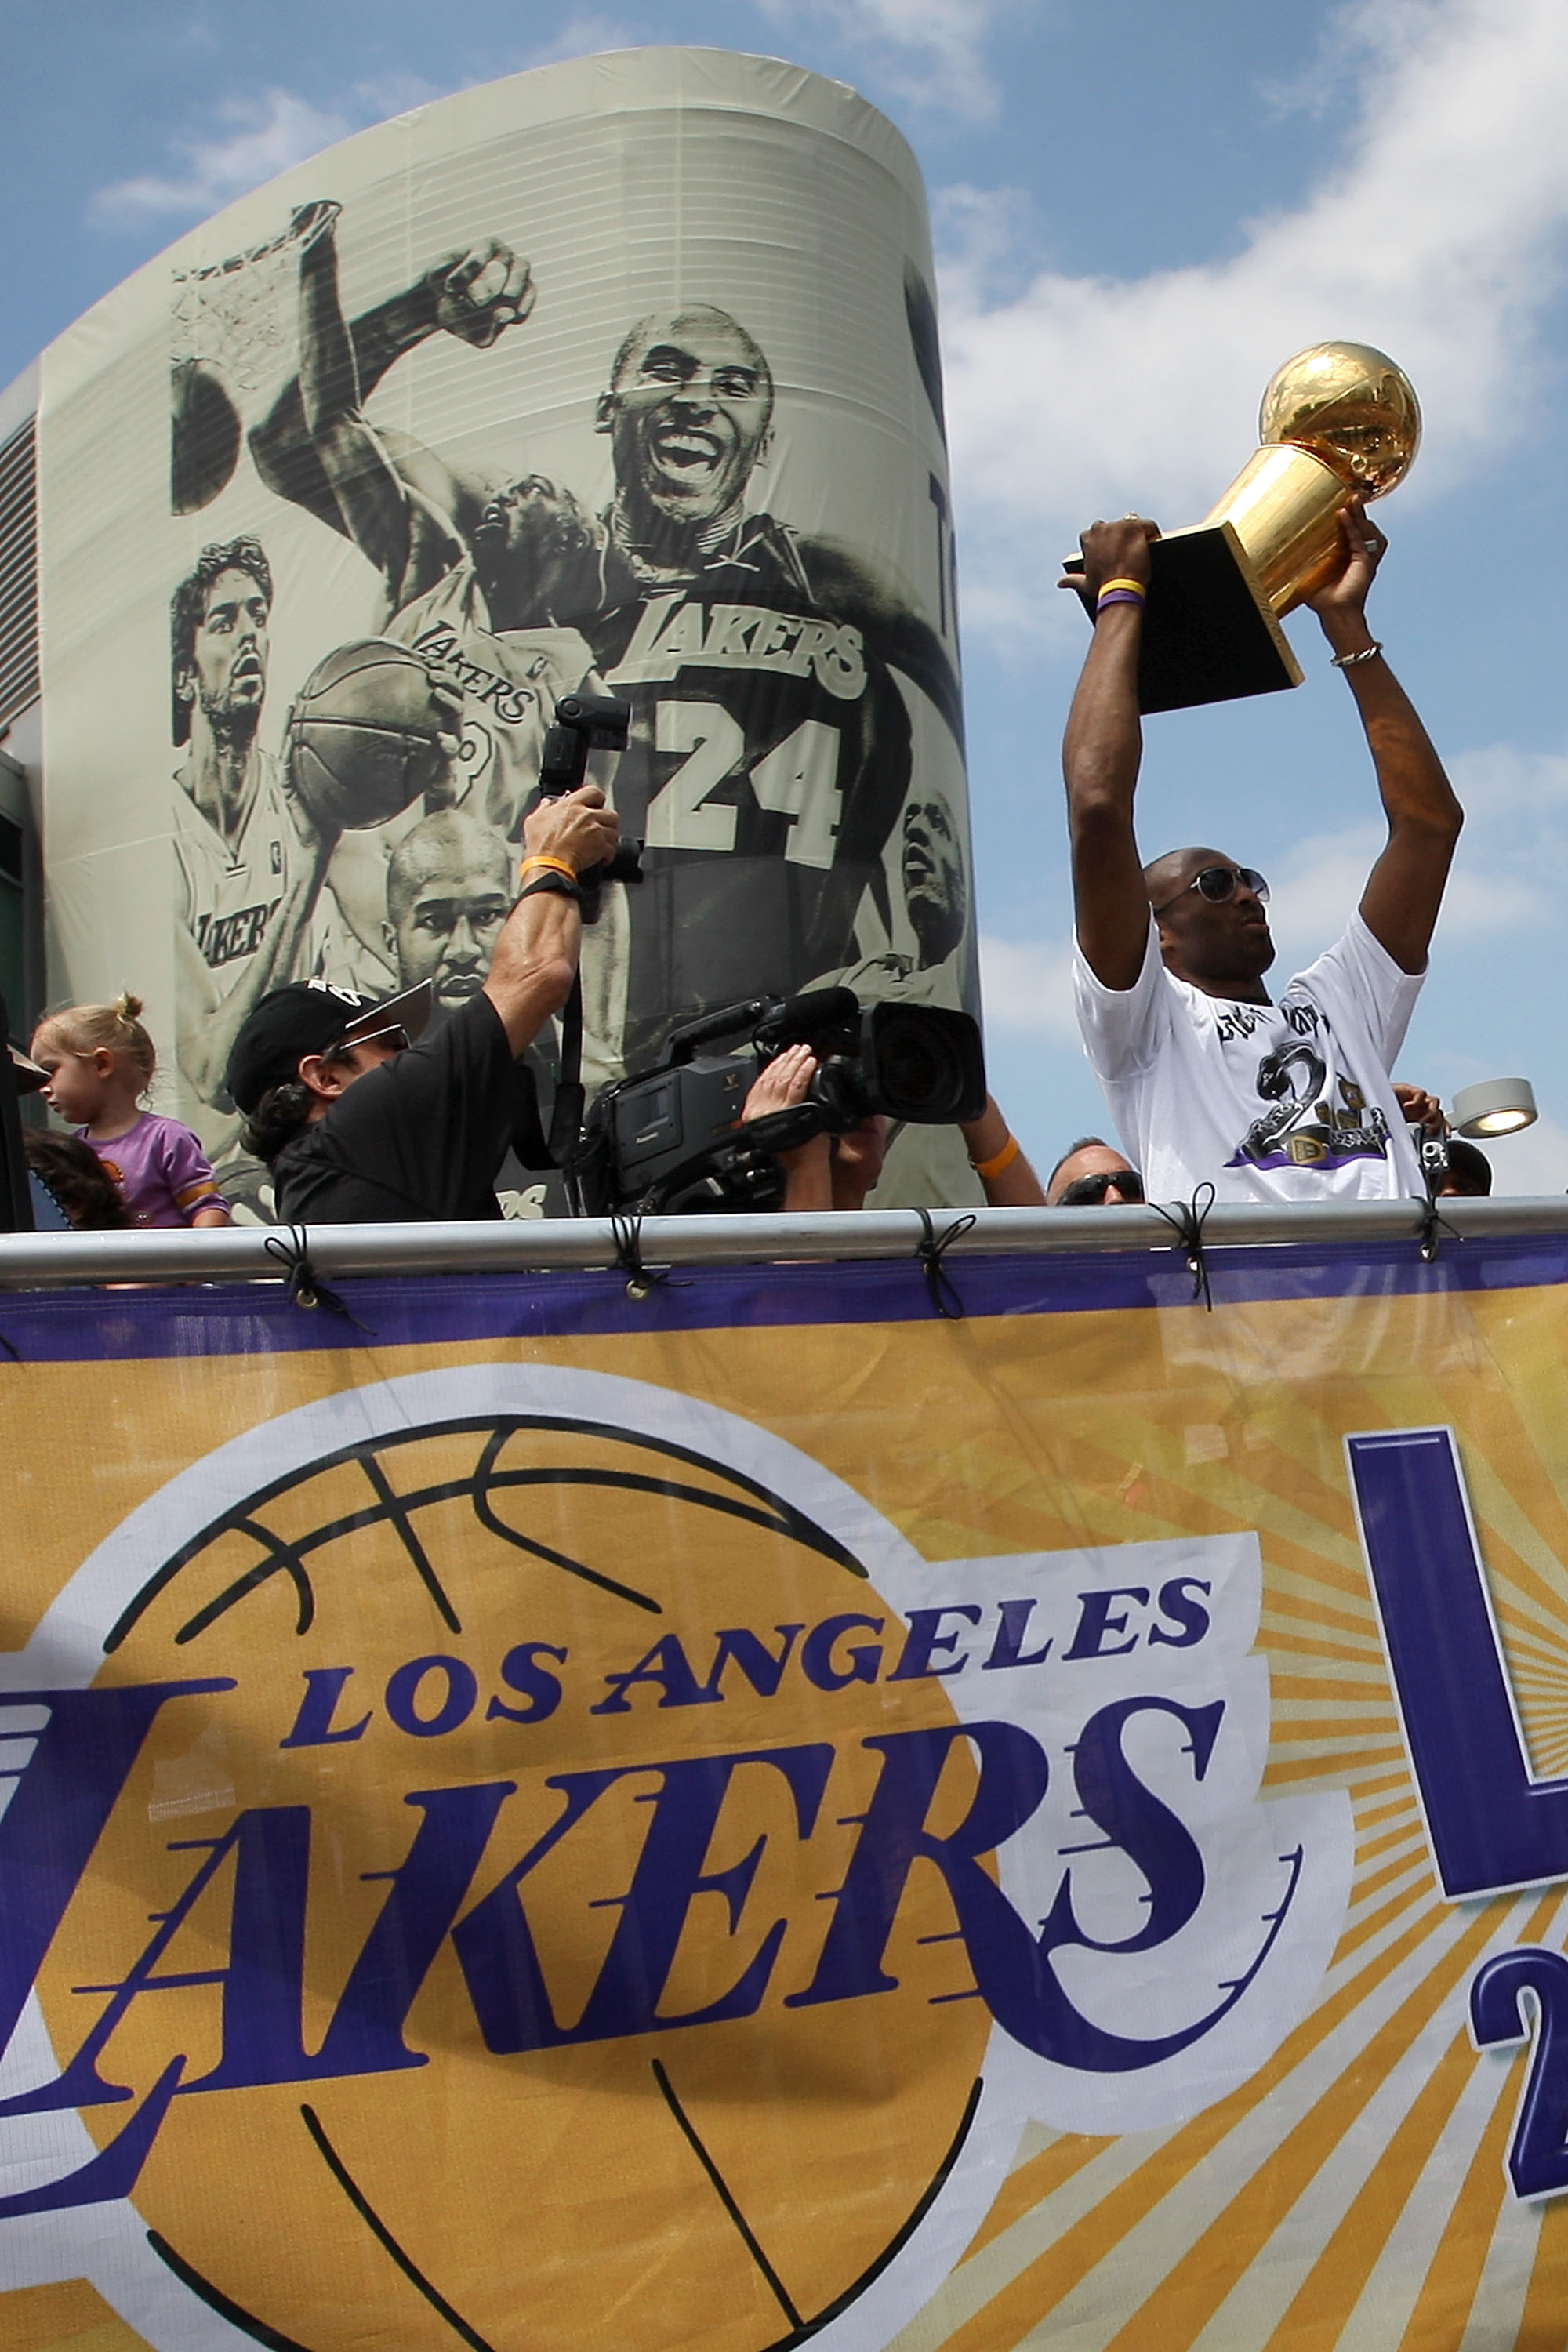 LOS ANGELES, CA - JUNE 21:  Los Angeles Lakers guard Kobe Bryant hoists the championship trophy as he rides past a mural featuring himself during the victory parade for the the NBA basketball champion team on June 21, 2010 in Los Angeles, California. The